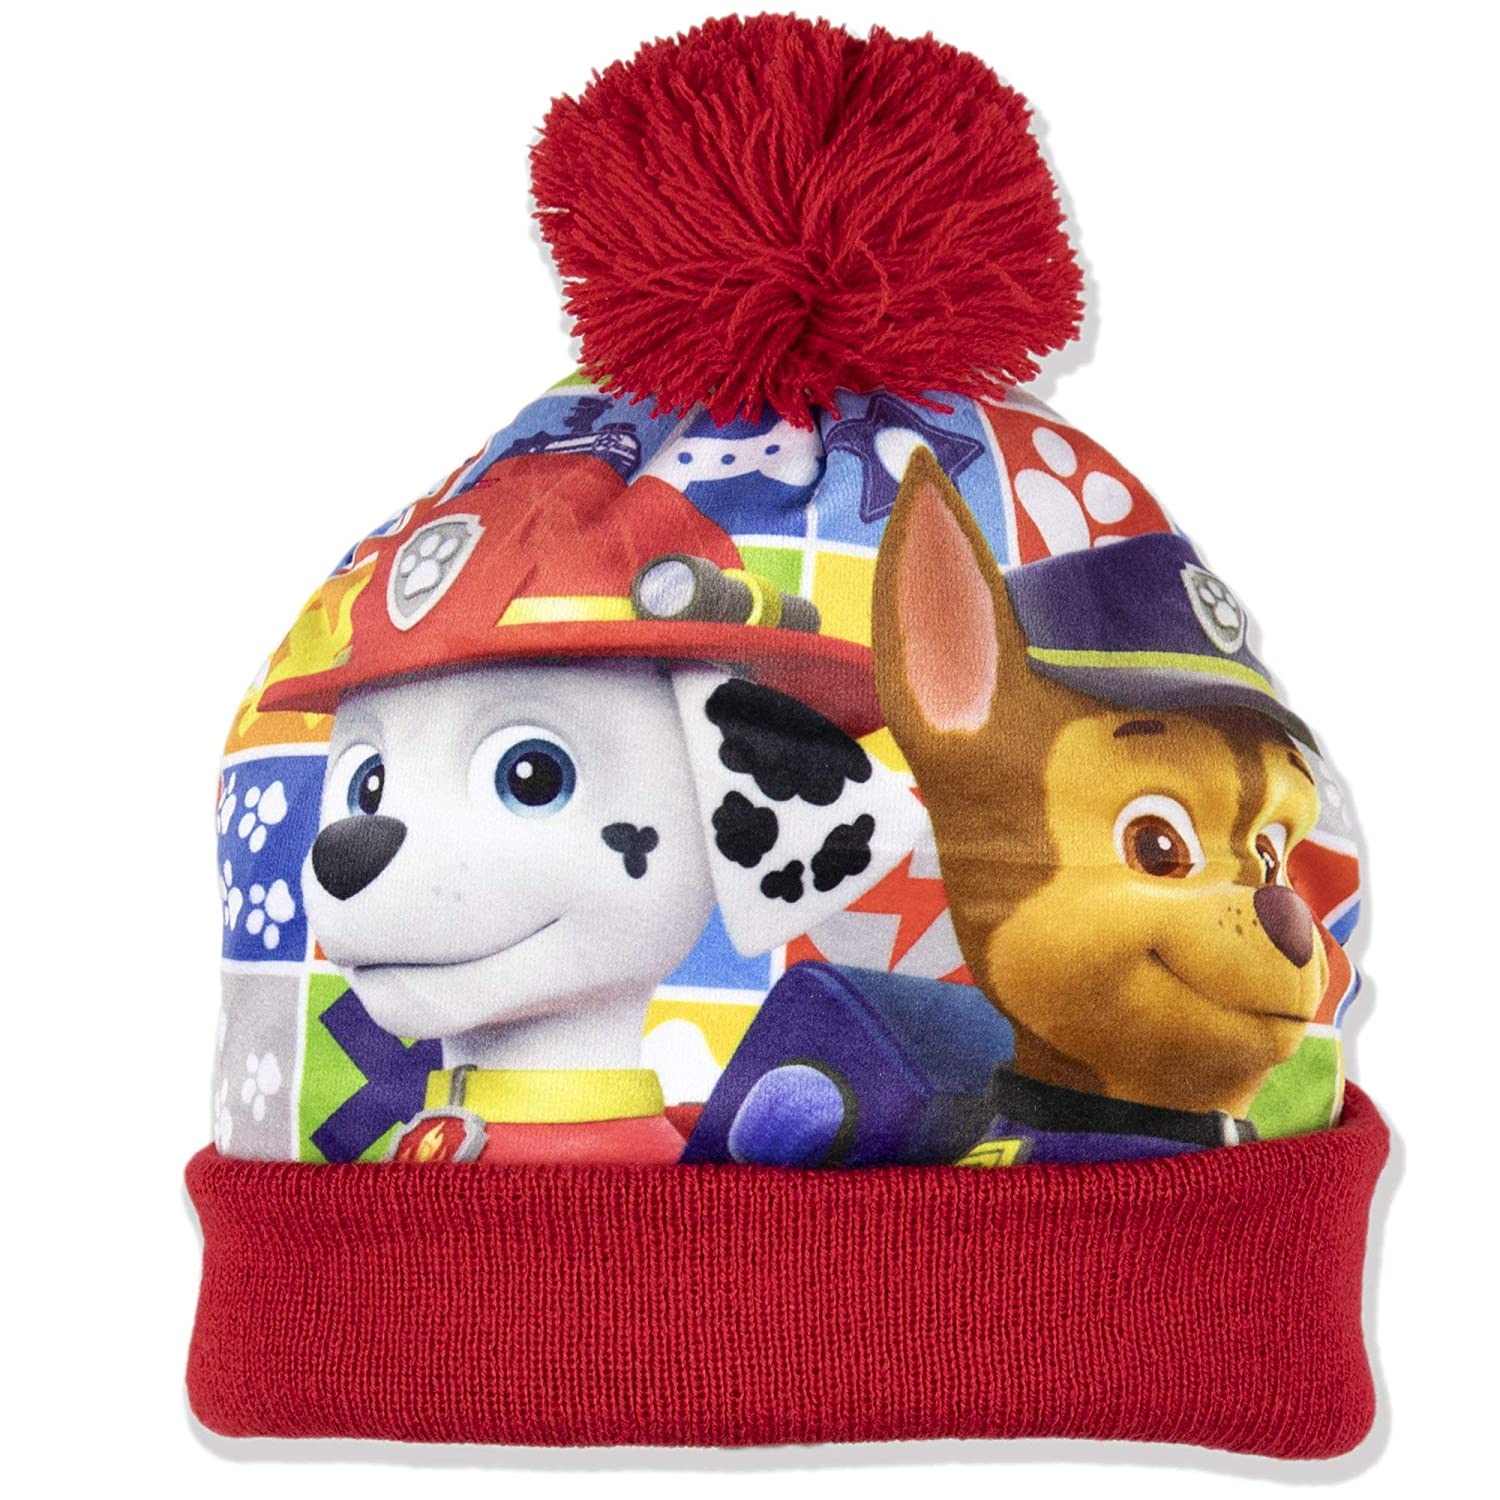 Paw Patrol Official Boys Warm Winter Bobble Style Hat with Pom Pom Marshall and Chase Character 2-8 Years